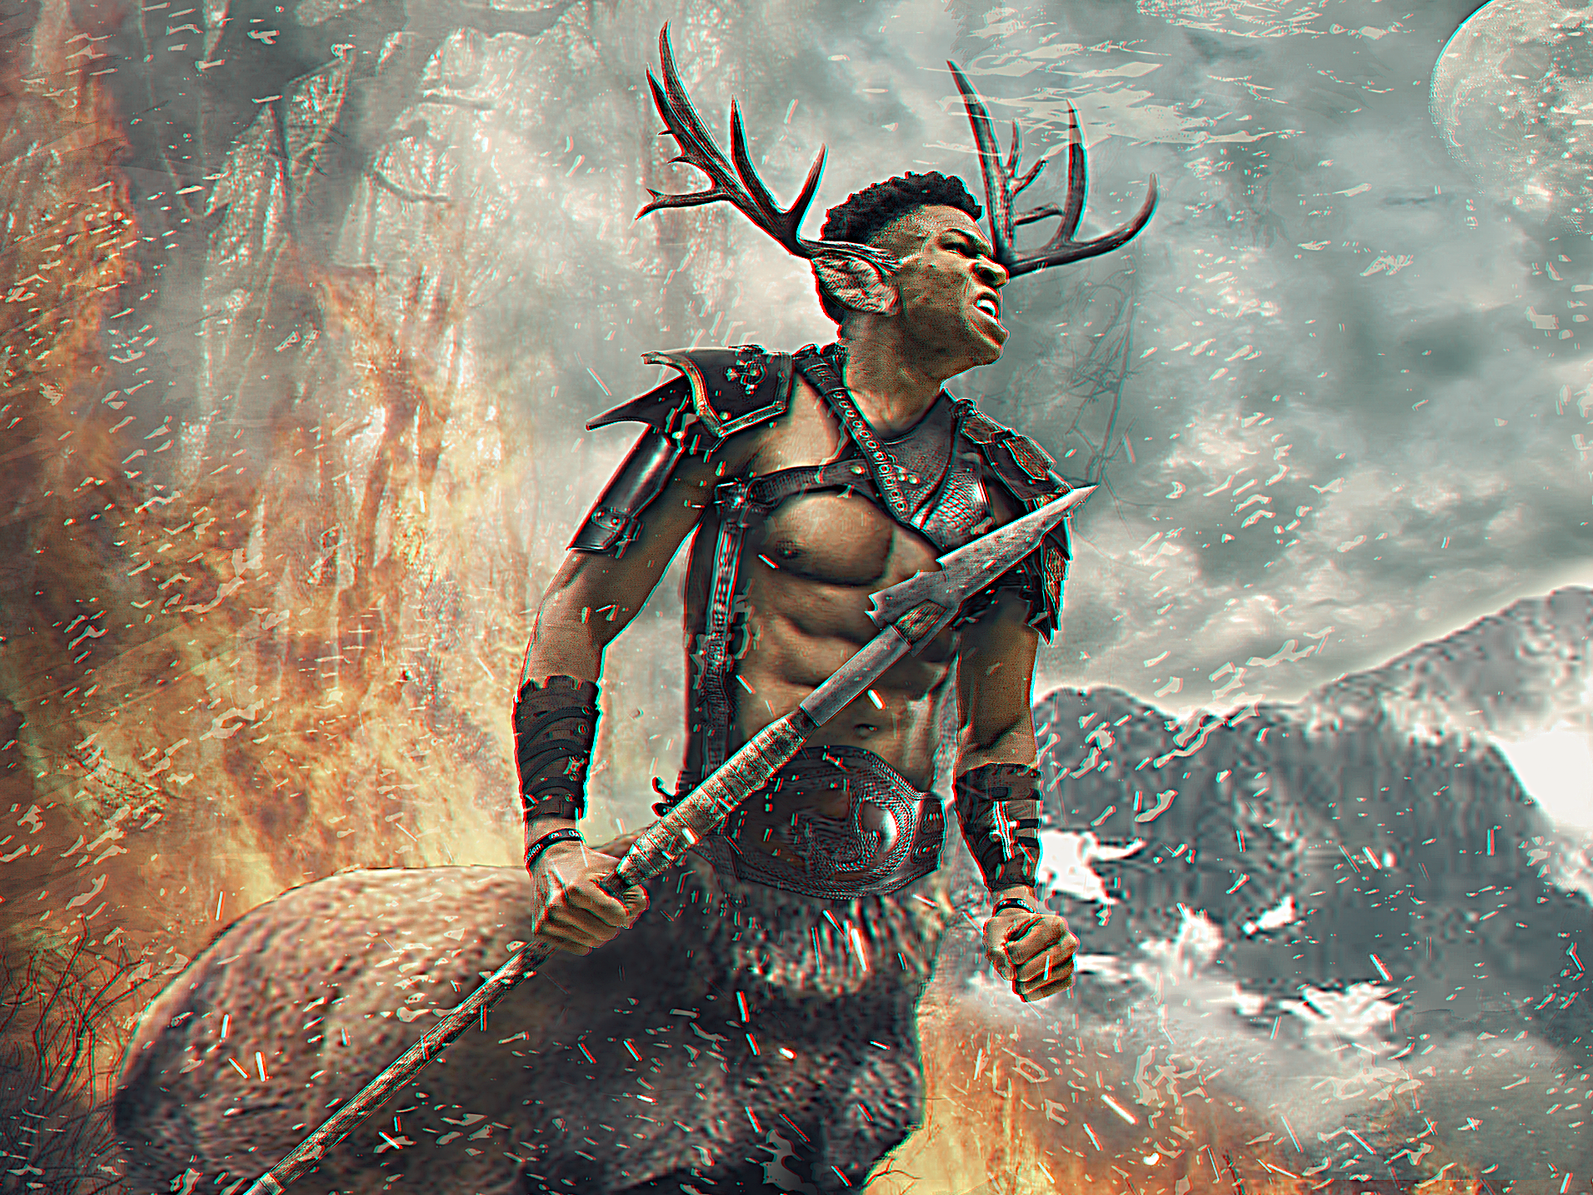 Fear the Deer | Giannis Antetokounmpo curry lebron fantasy poster design design graphic design hoops behance nba poster photo manipulation sports poster photoshop basketball sports sports design nba fear the deer greek freak milwaukee bucks giannis antetokounmpo